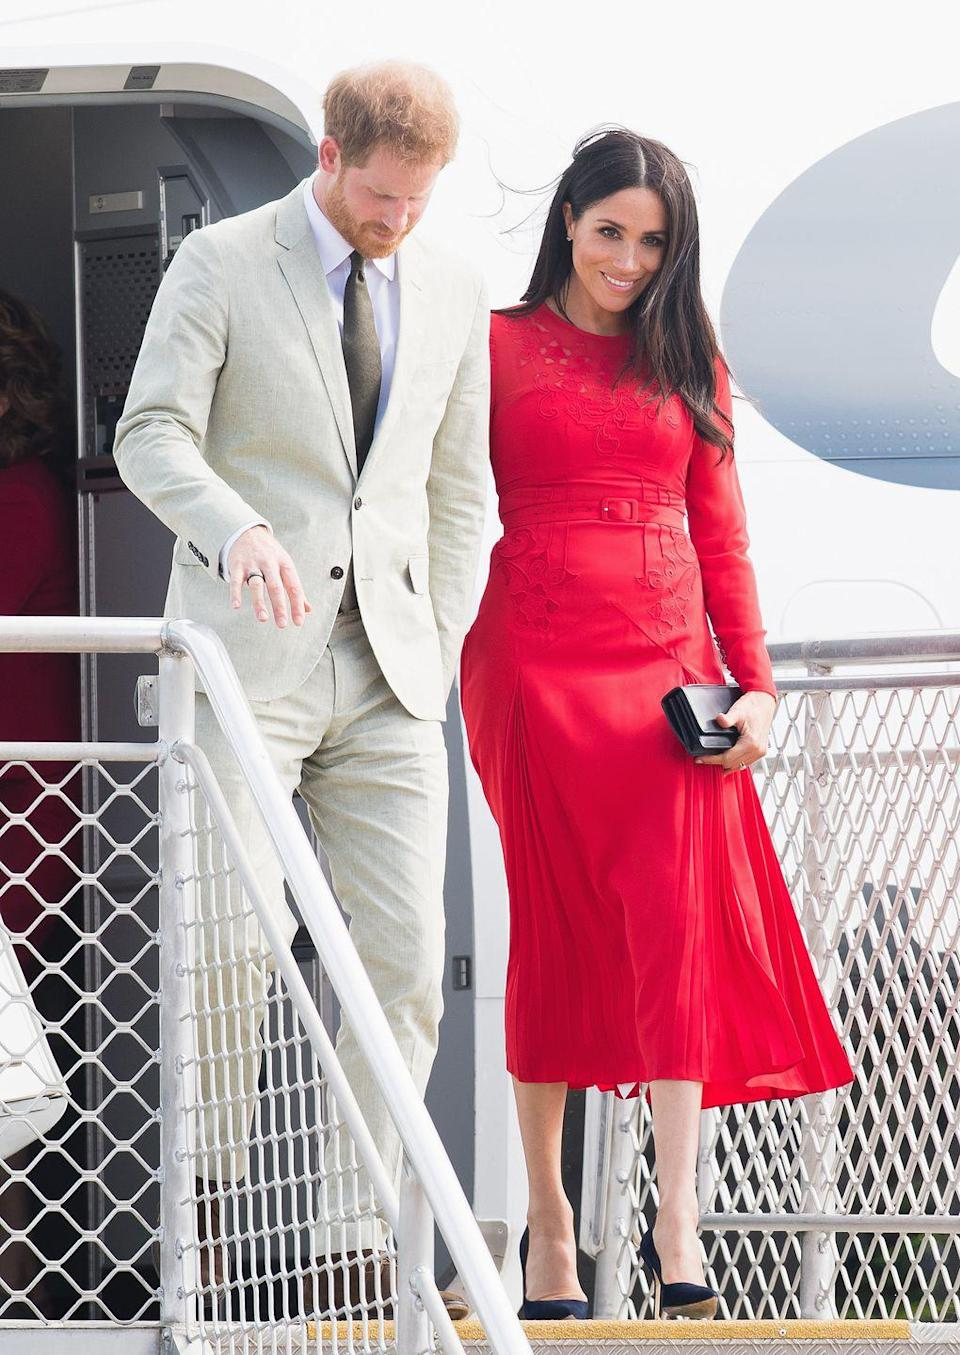 "<p>Meghan had a quick change on the plane and arrived Tonga wearing a <a href=""https://www.townandcountrymag.com/style/fashion-trends/a24183870/meghan-markle-white-theia-gown-dinner-tonga-photo/"" rel=""nofollow noopener"" target=""_blank"" data-ylk=""slk:red midi-length dress"" class=""link rapid-noclick-resp"">red midi-length dress</a> by Self Portrait paired with a black clutch and pumps.</p>"